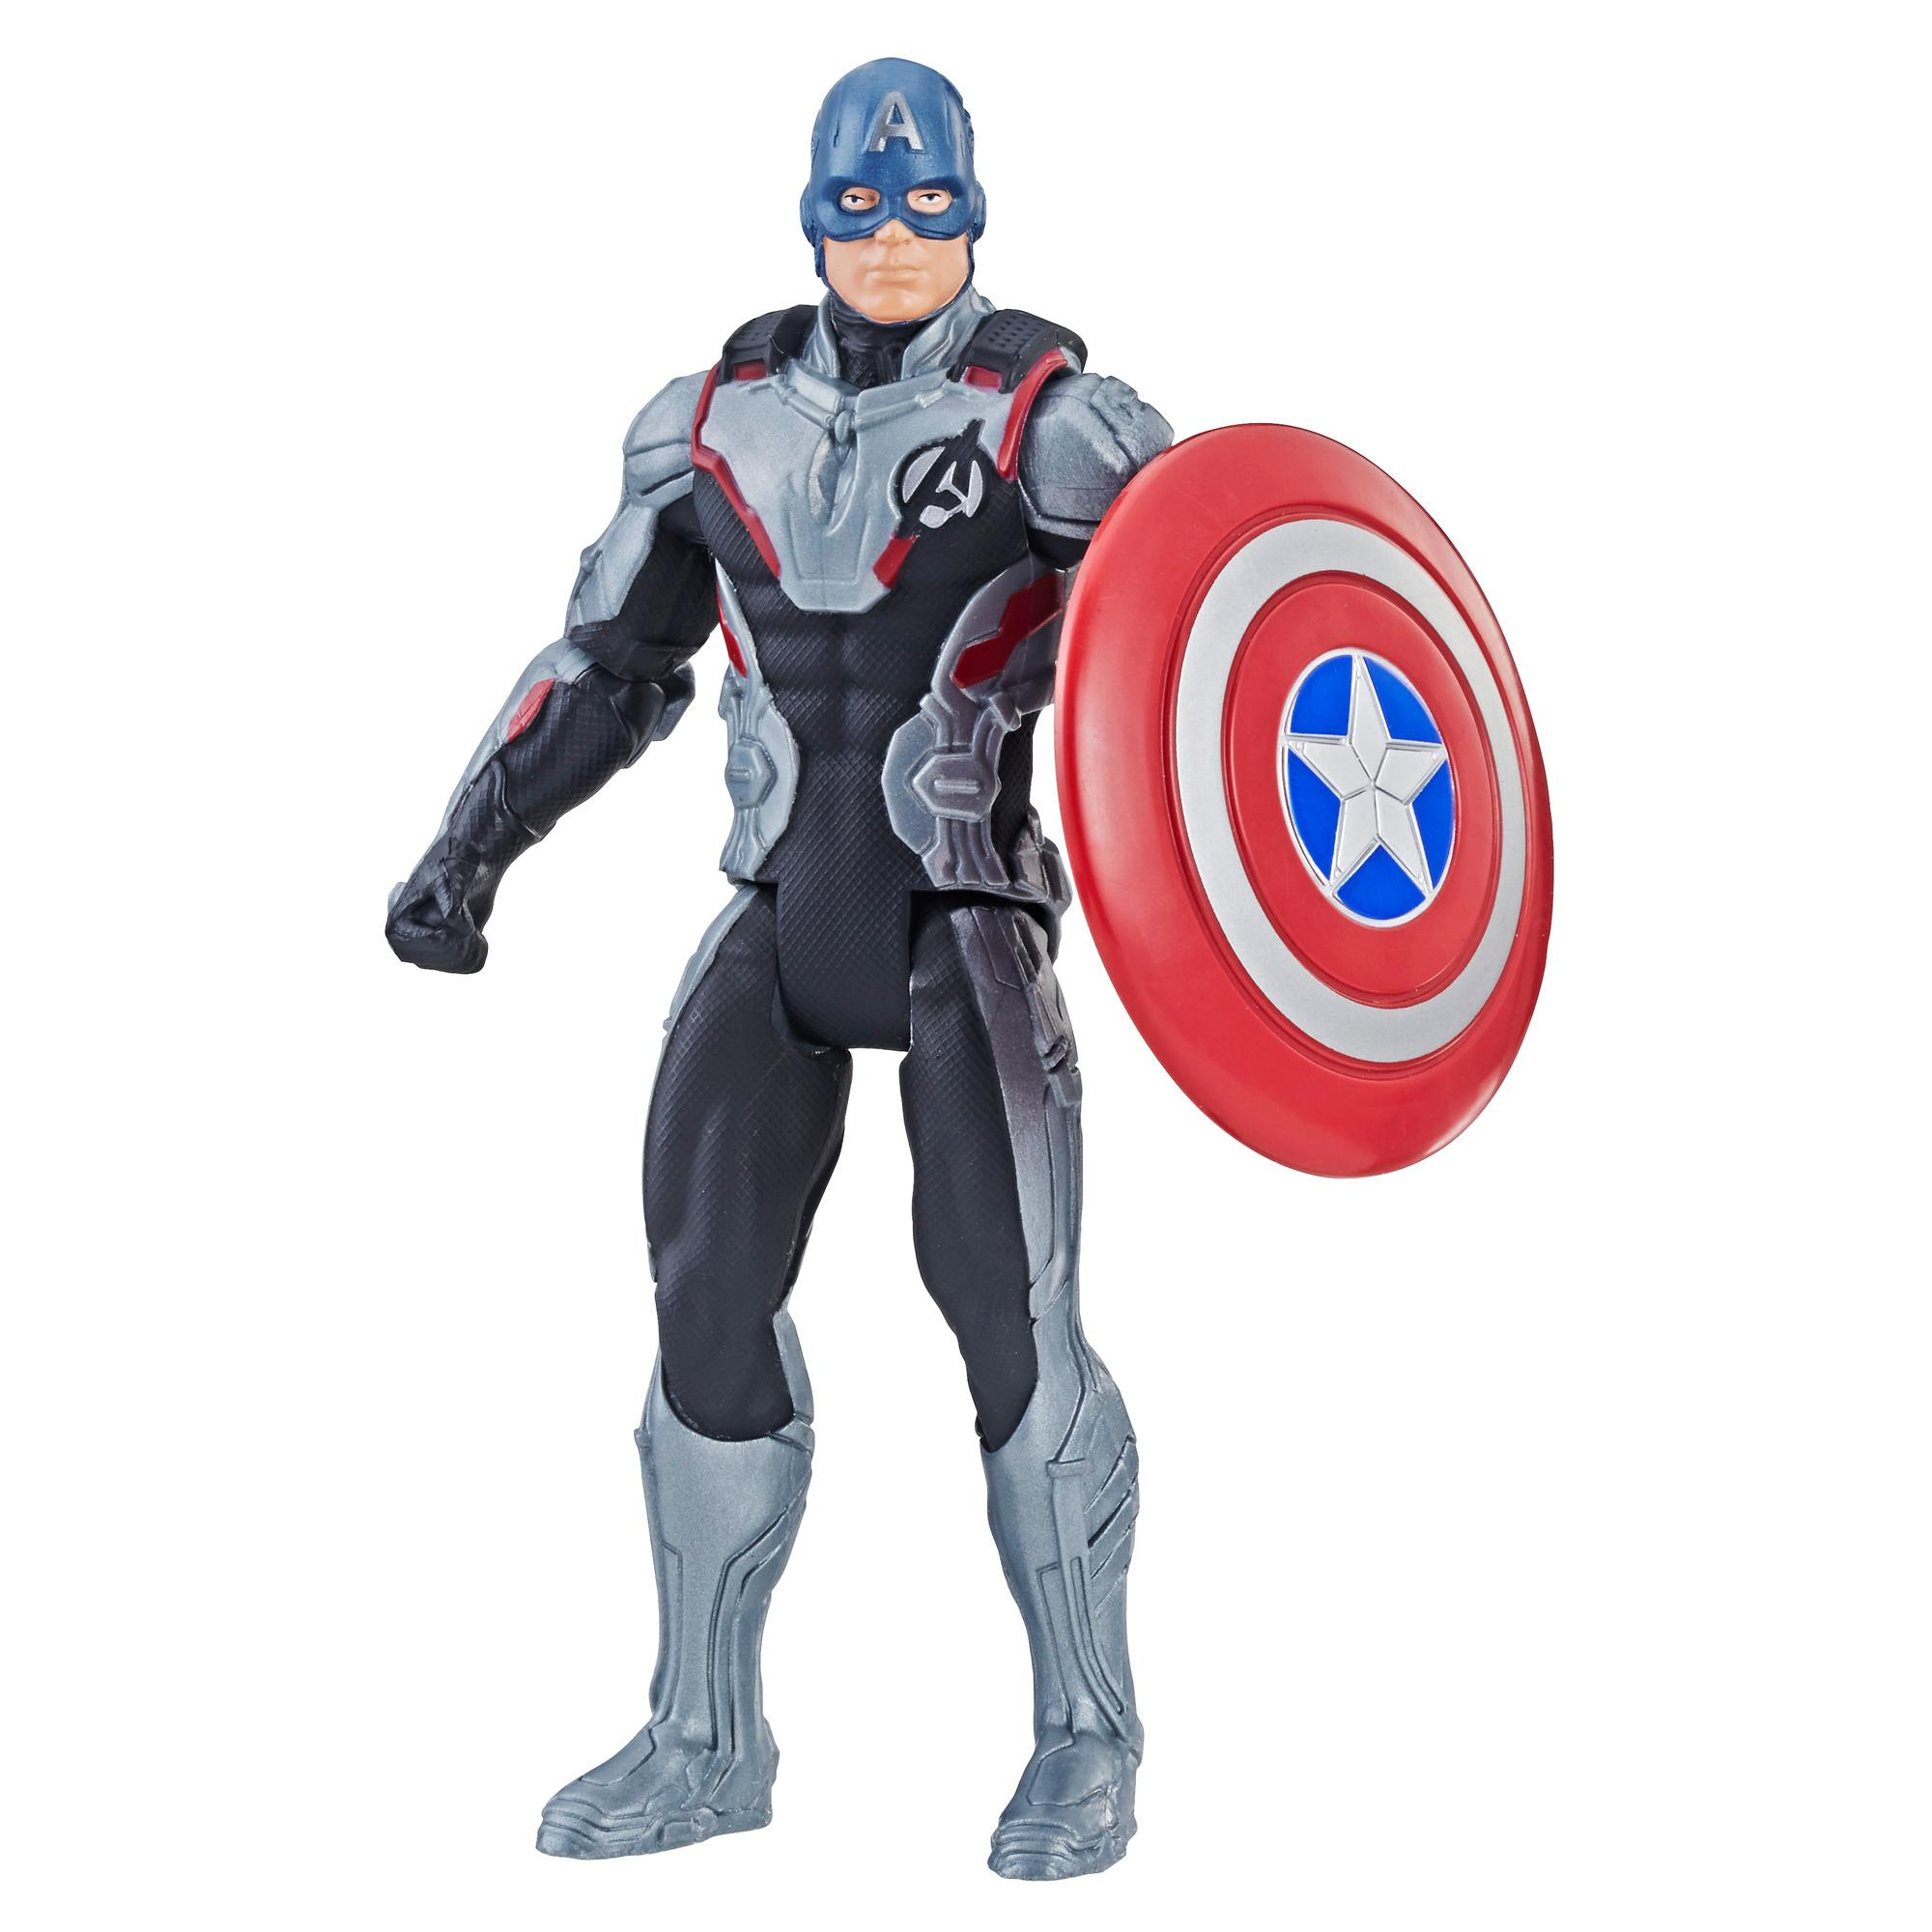 Marvel Avengers: Endgame Team Suit Captain America 6-Inch-Scale Figure